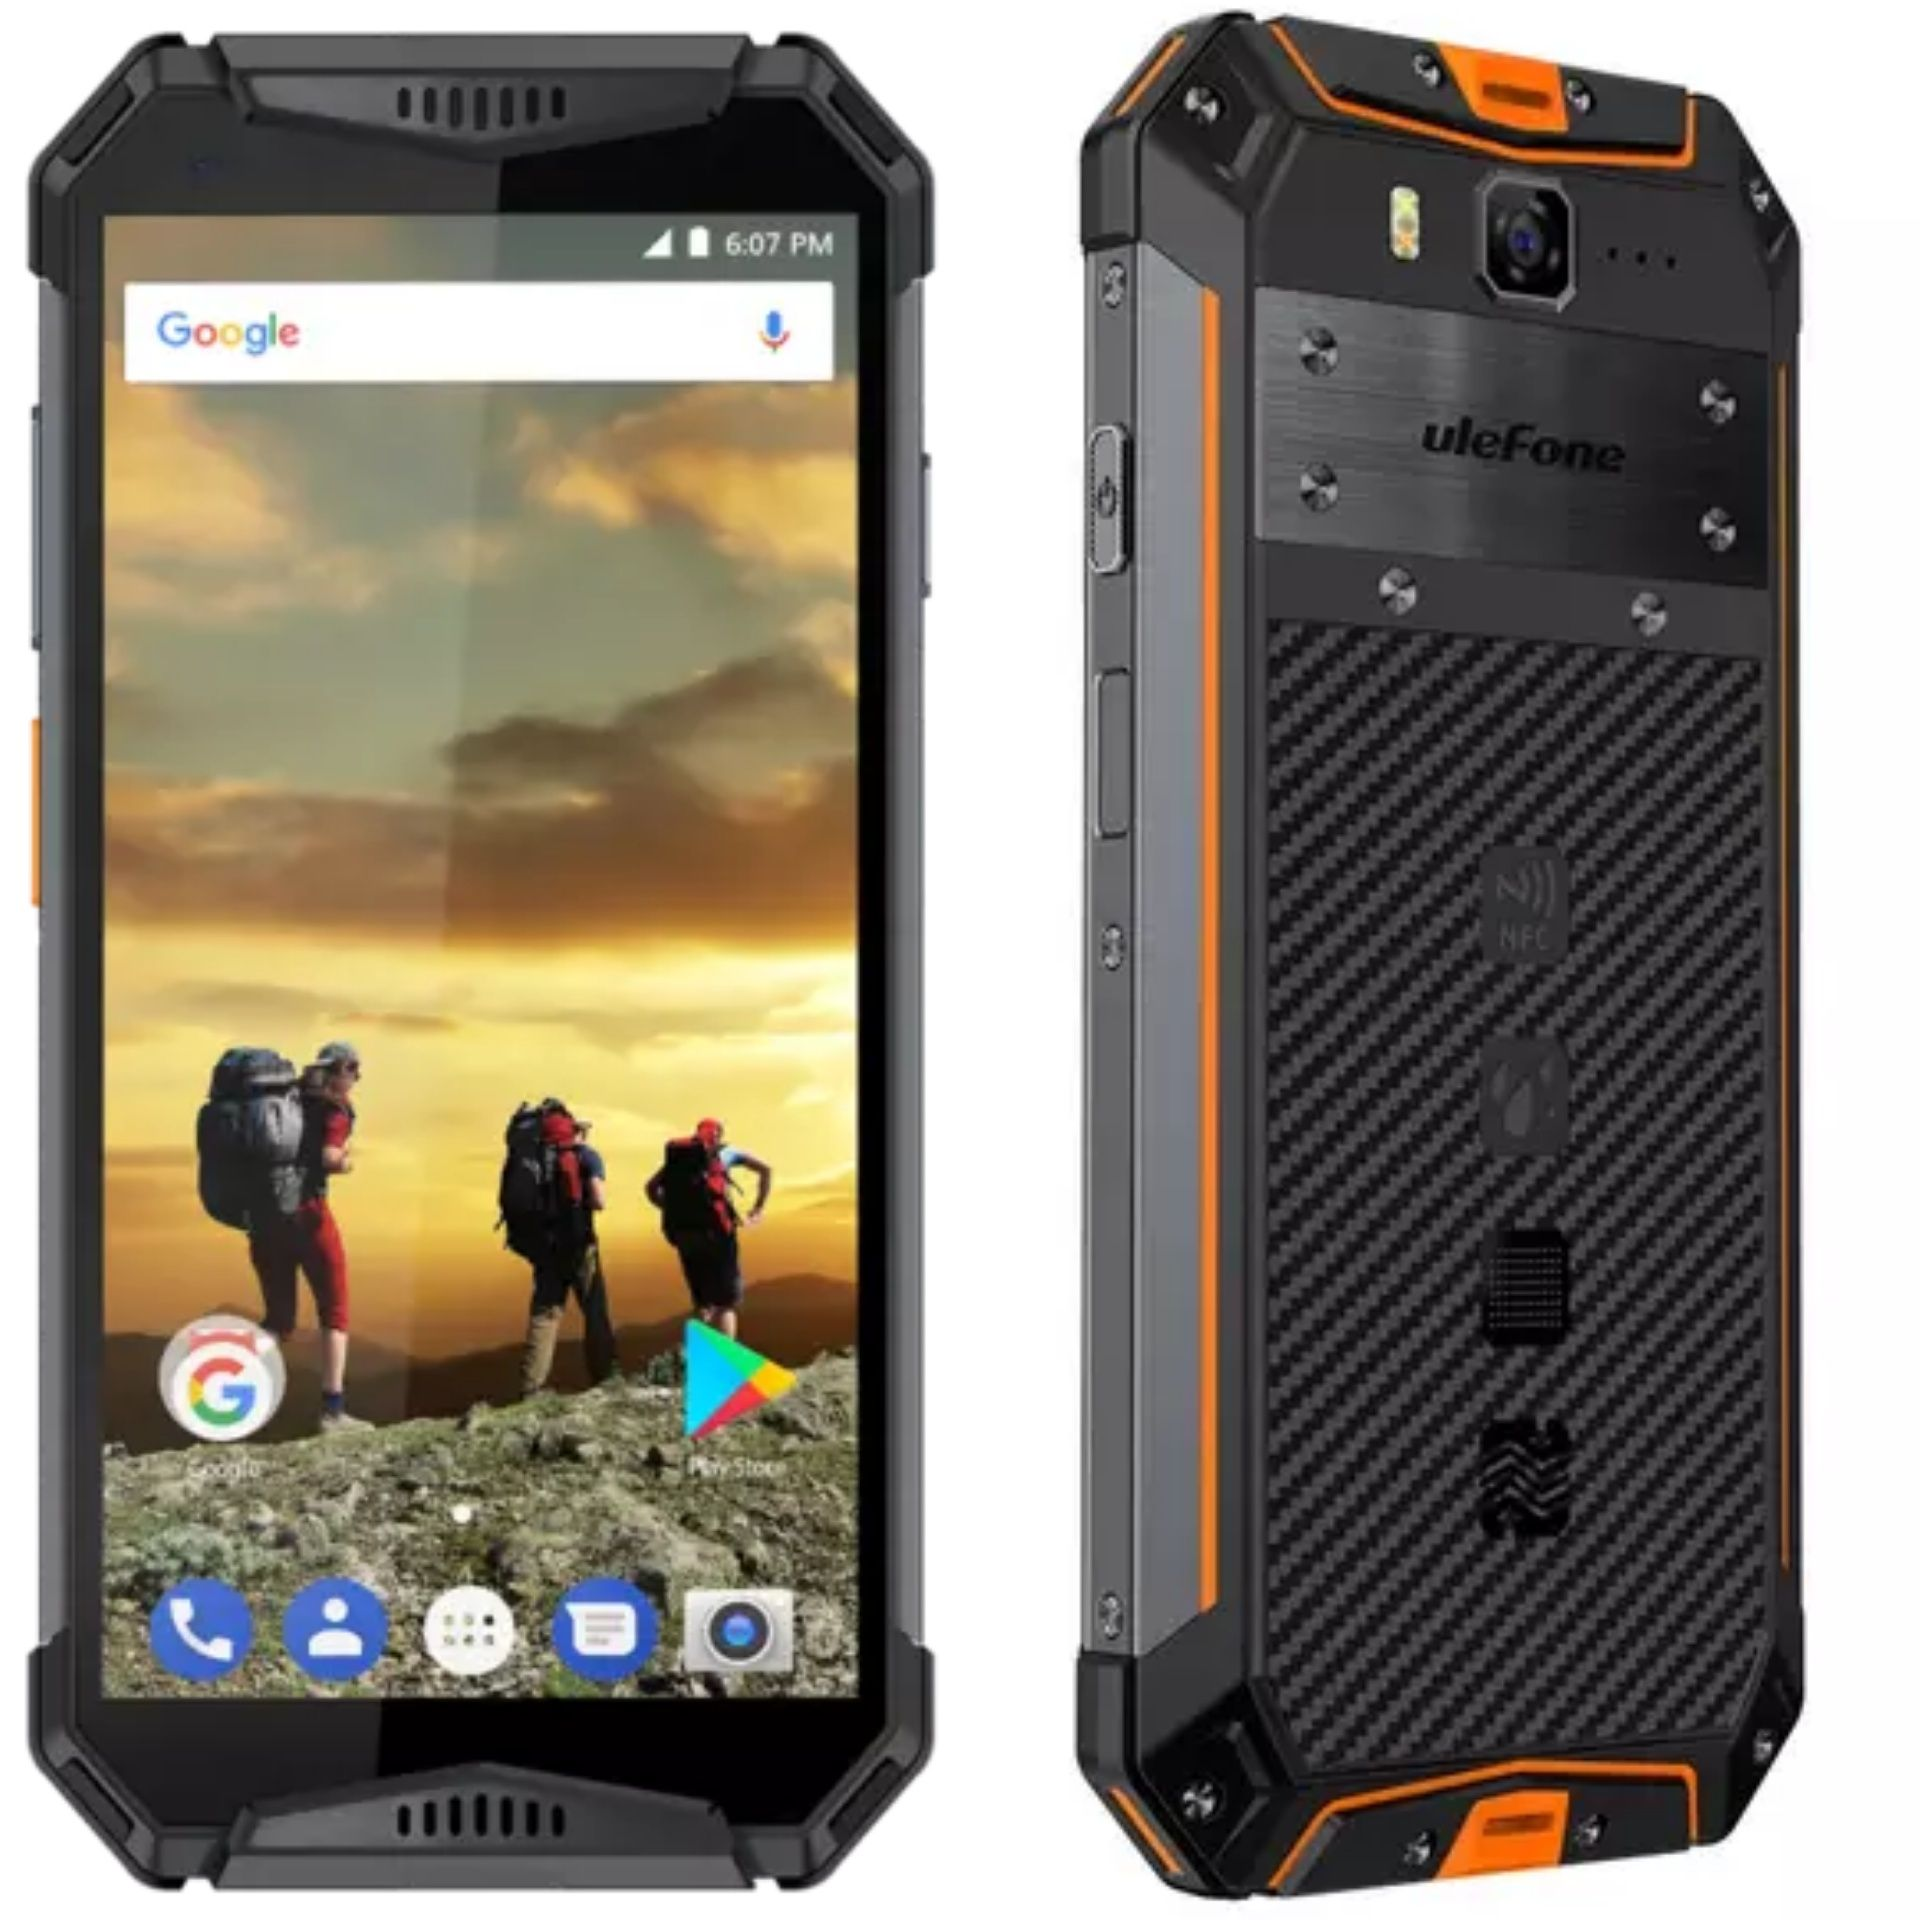 Ulefone Armor 3 has been launched by Ulefone as the latest